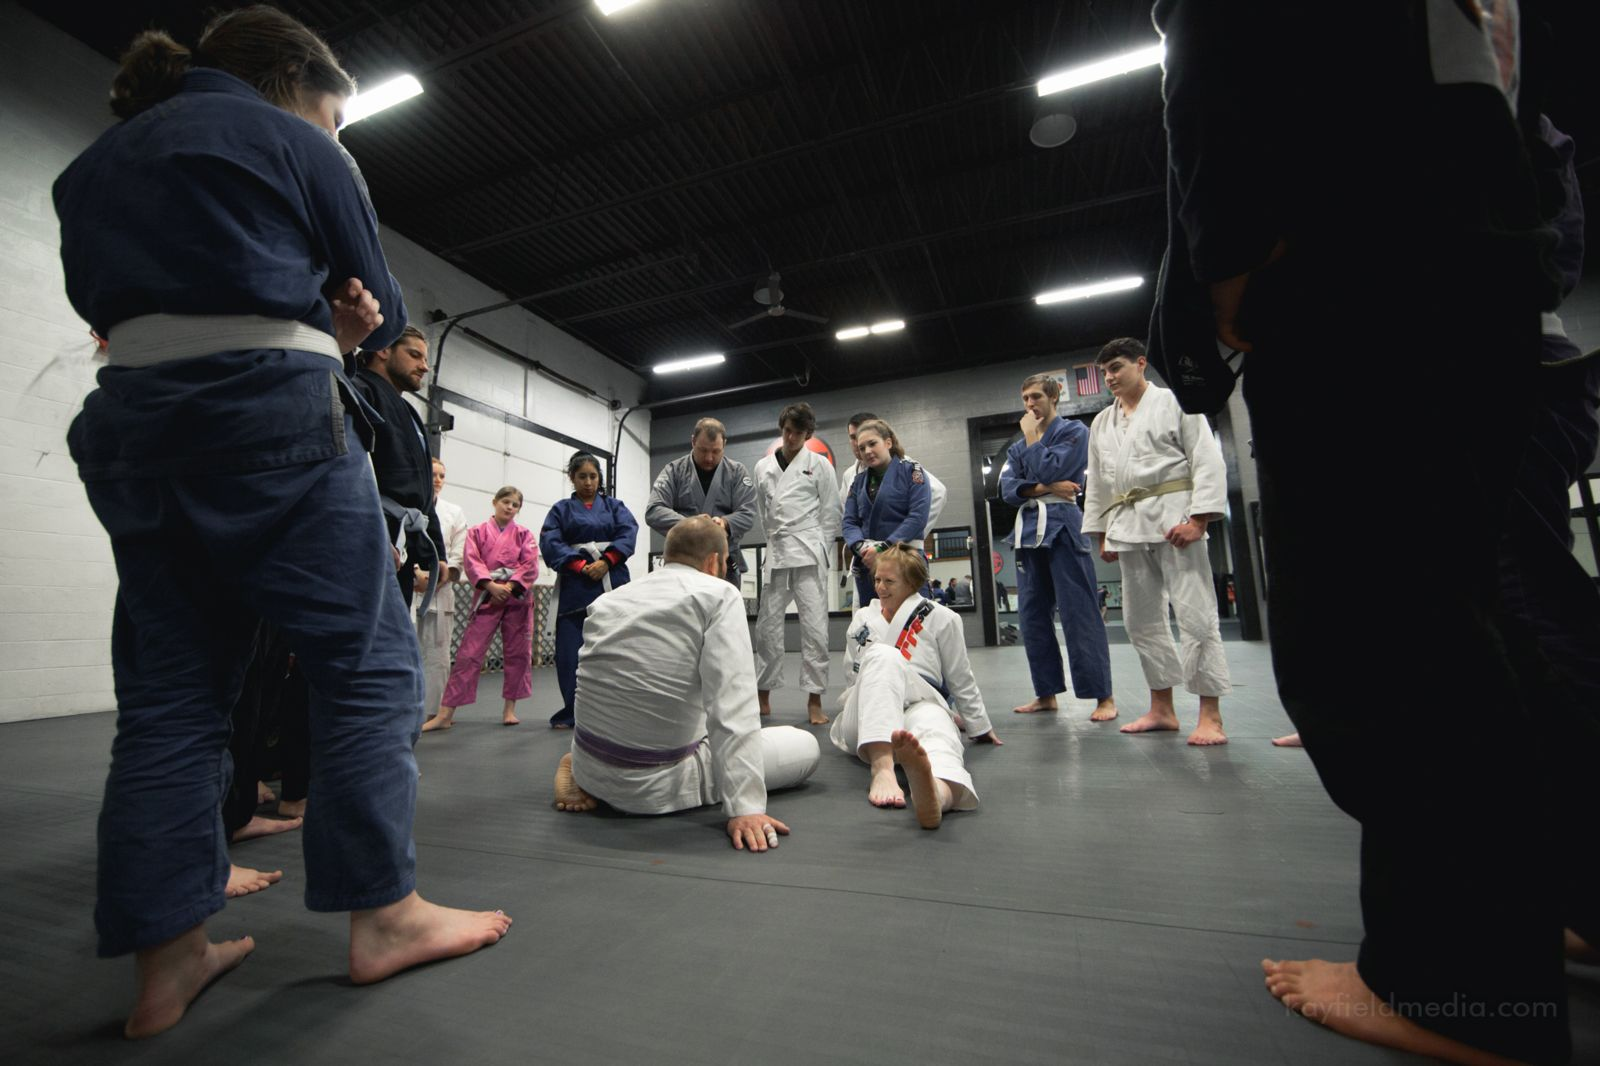 Brazilian Jiu JItsu Self Defense Classes in Exton and Berwyn, PA